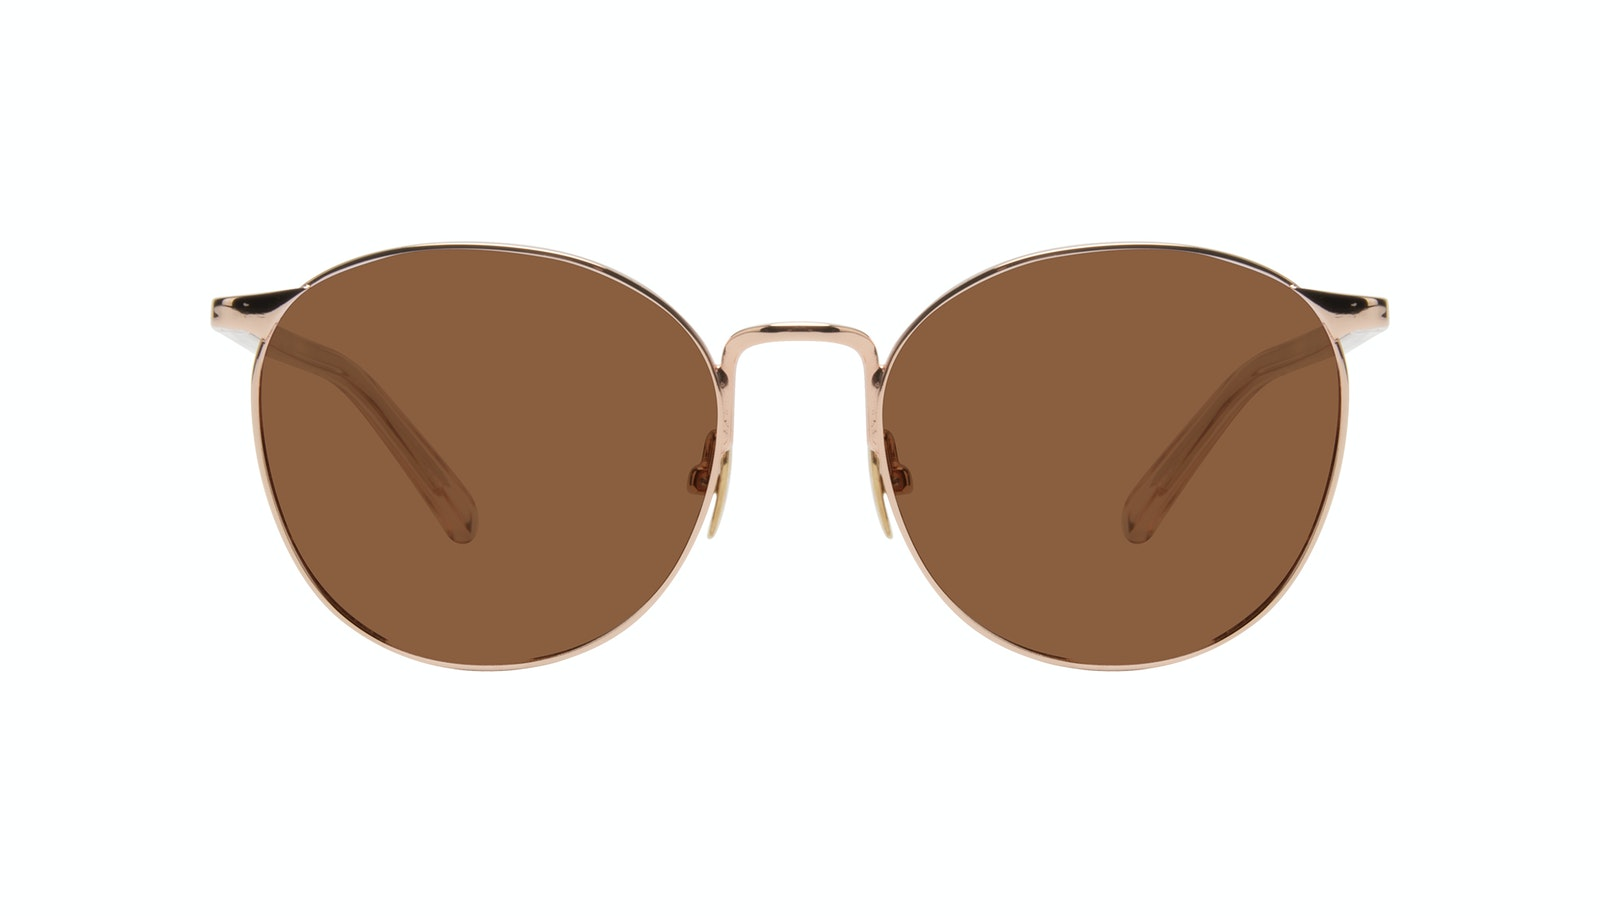 Affordable Fashion Glasses Round Sunglasses Women Romy Petite Aurore